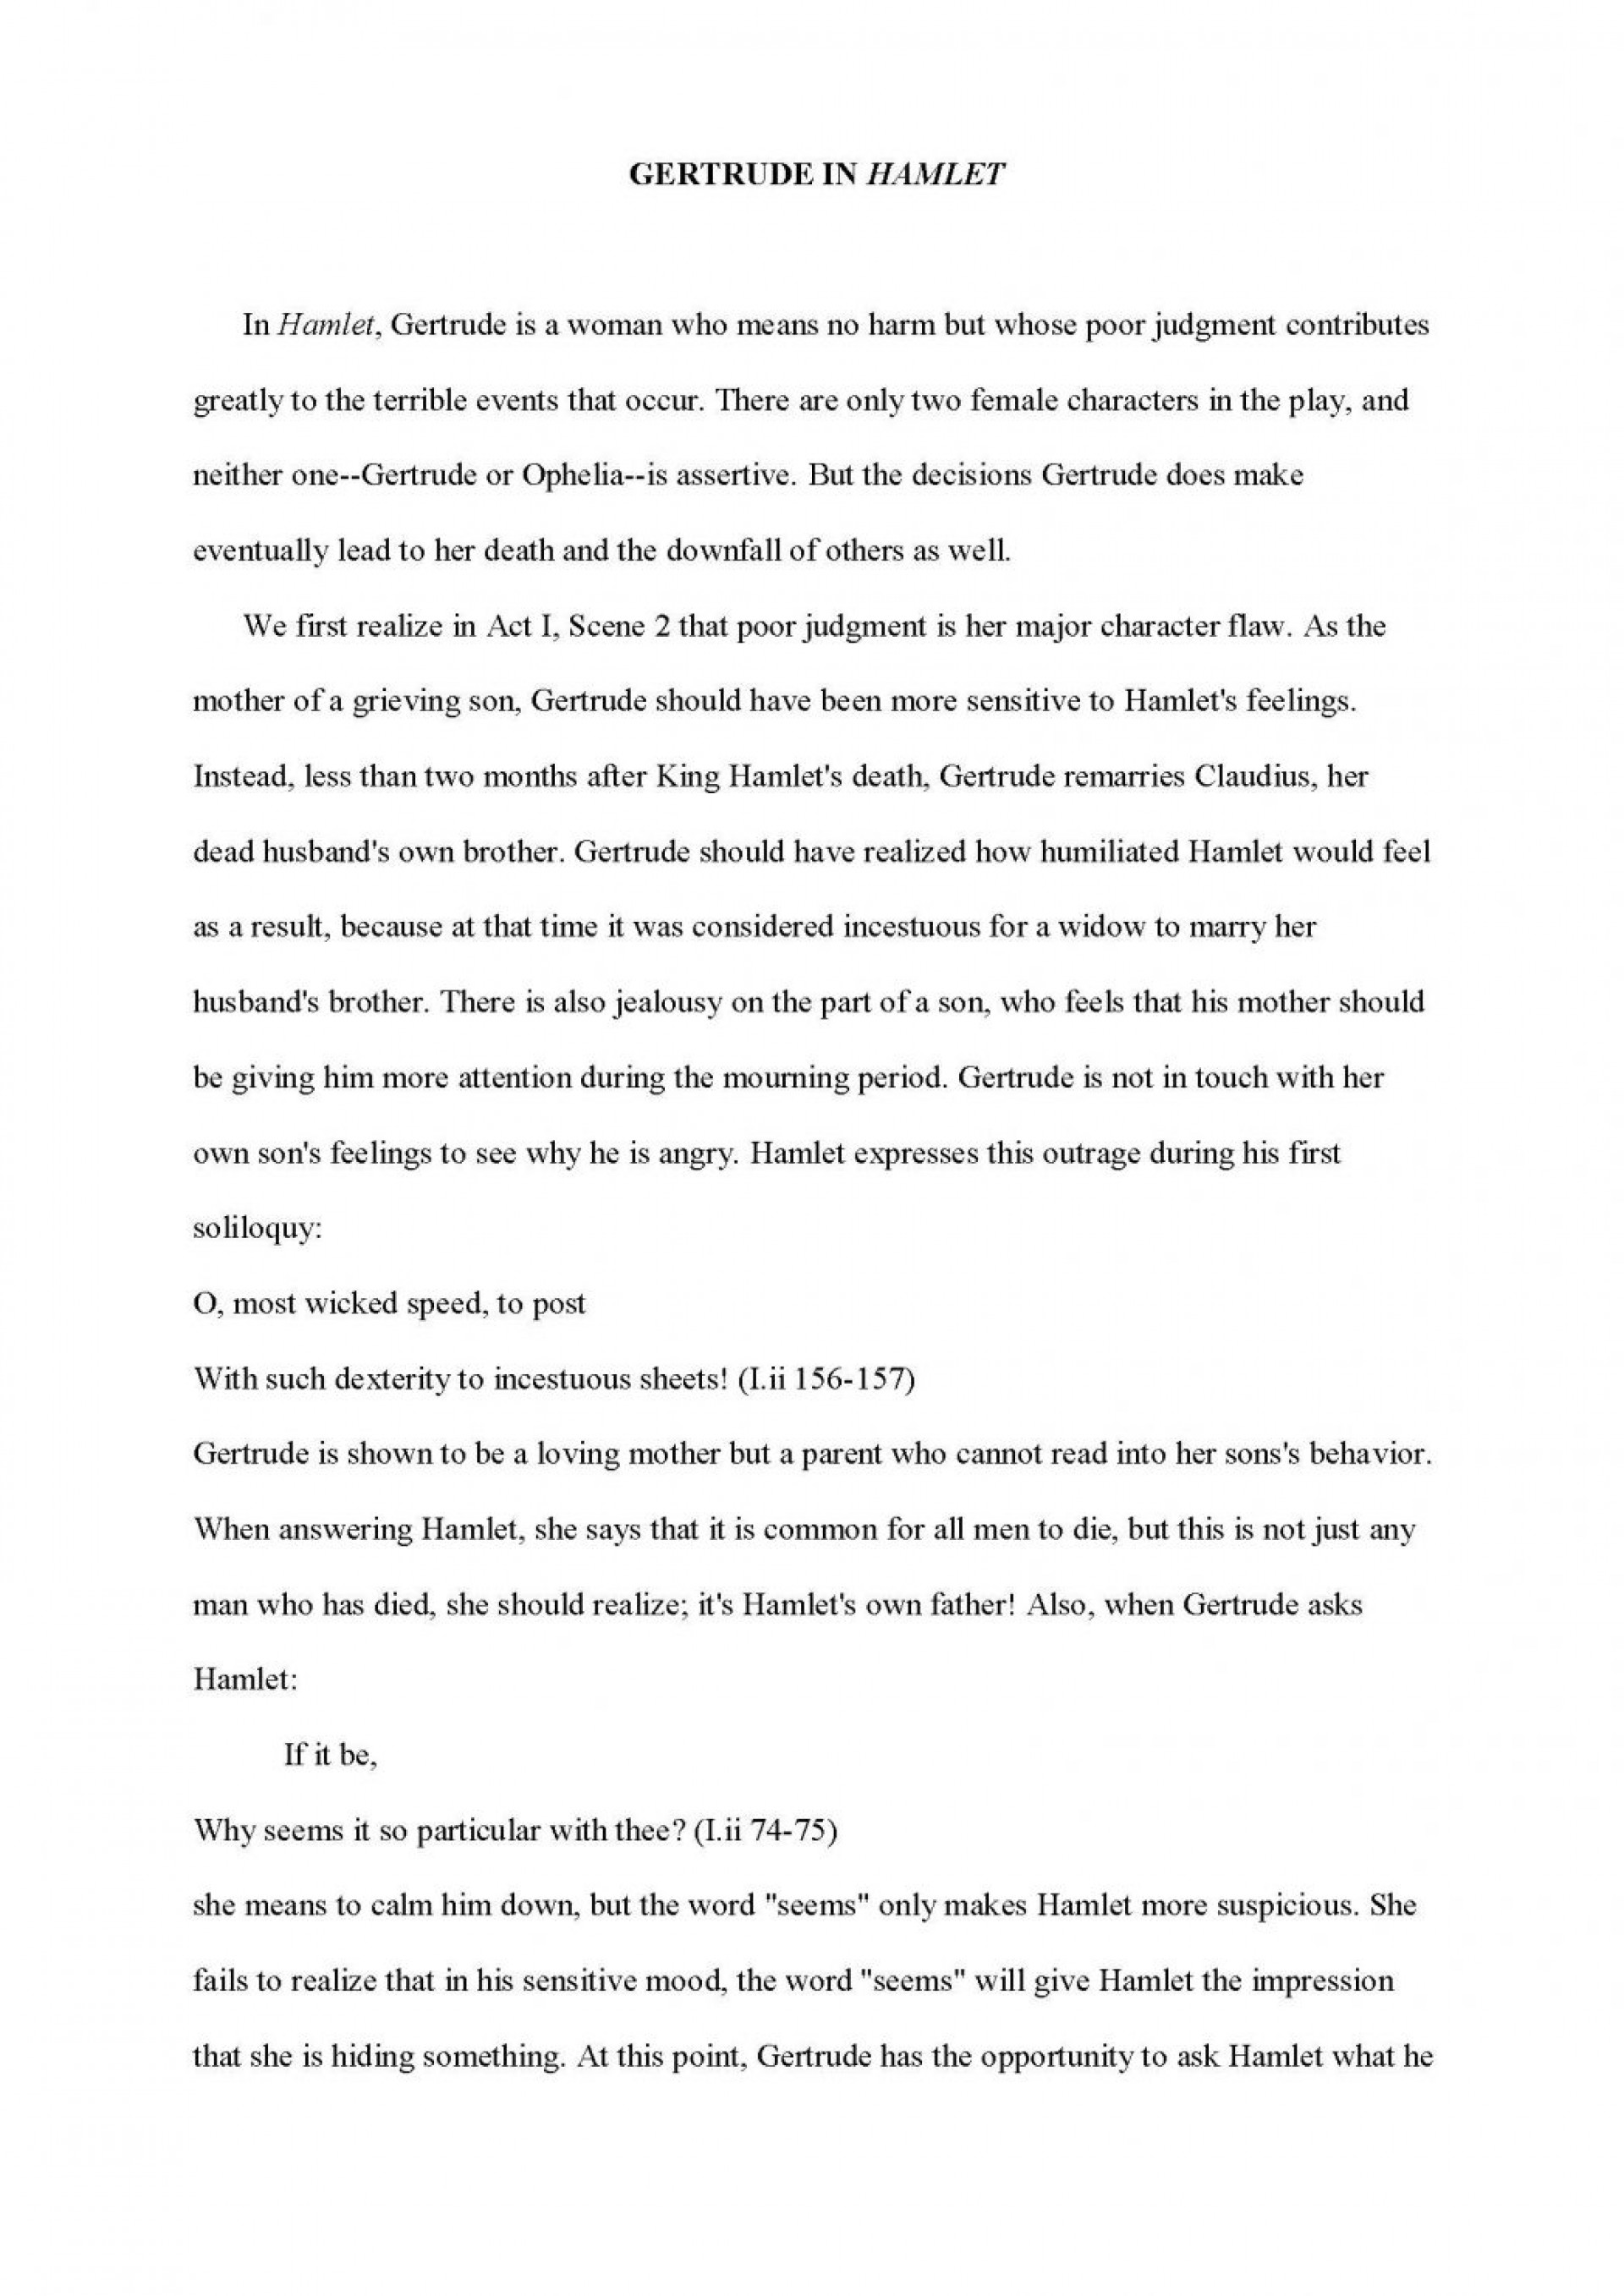 005 Profile Essays Examples Character Analysis Sample Essay Formal Characterization Paper Ex Example Characters Comparing 1048x1482 How To Write An Astounding On A Research 1920